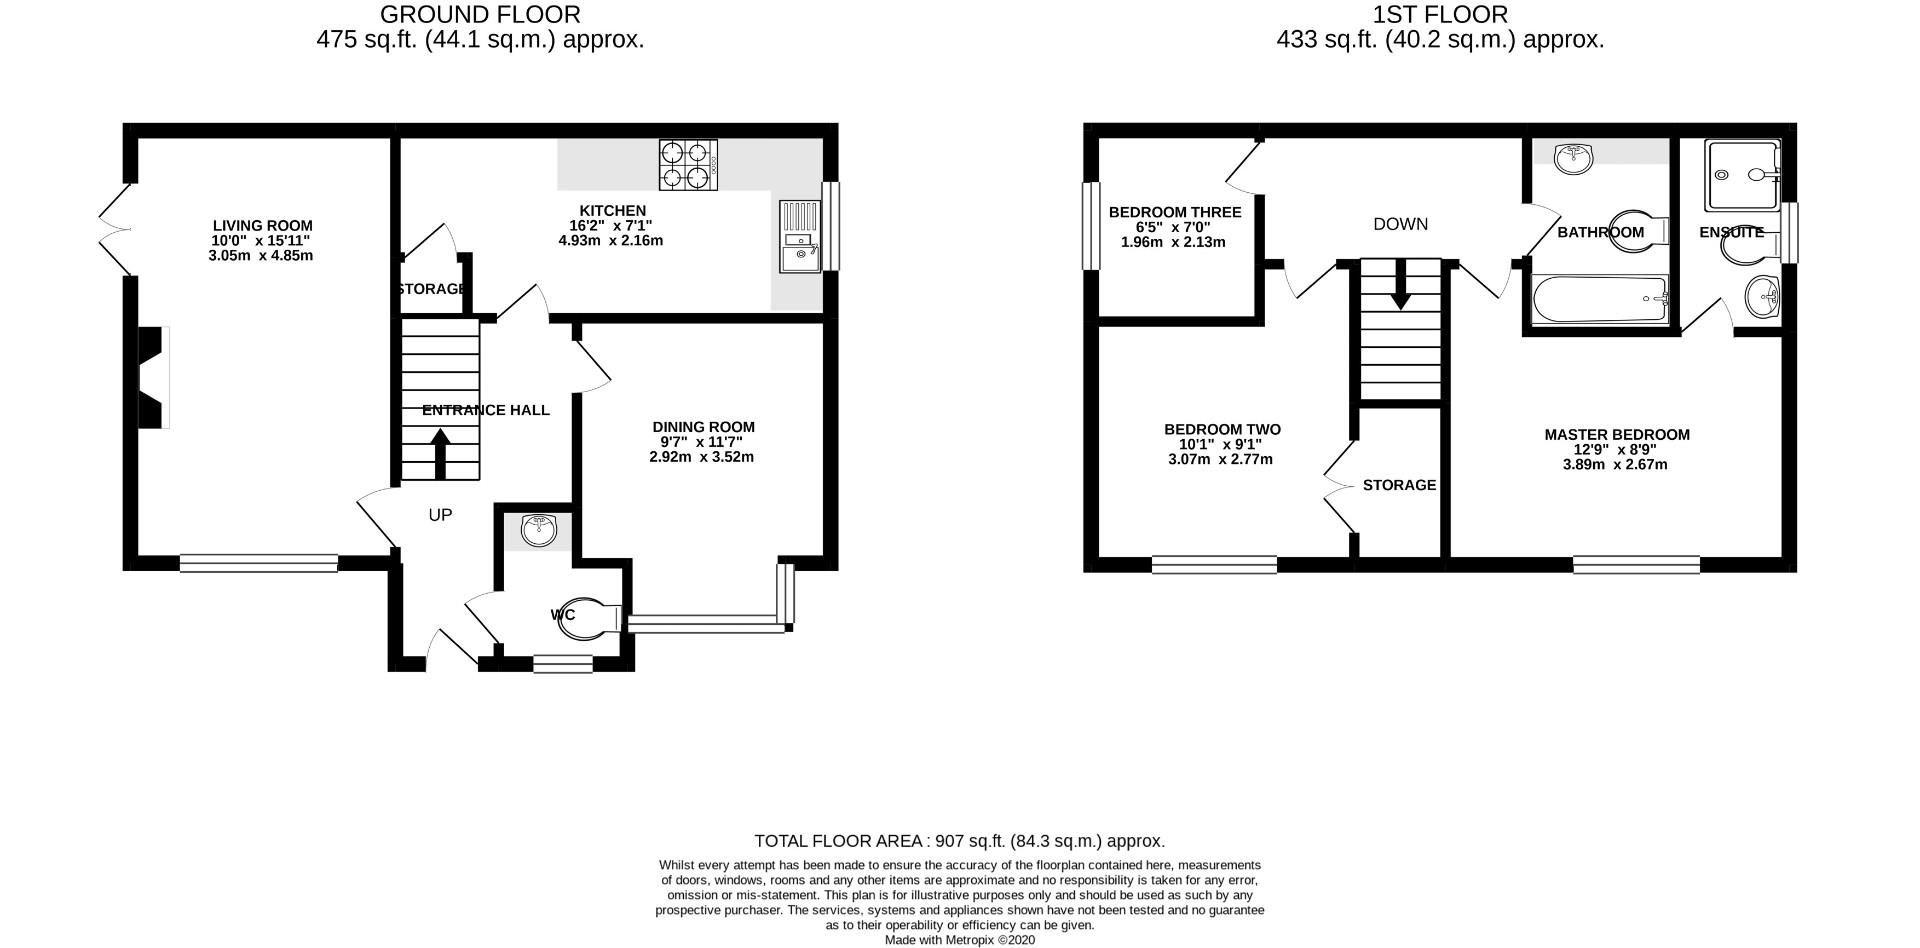 3 bed end of terrace for sale - Property Floorplan